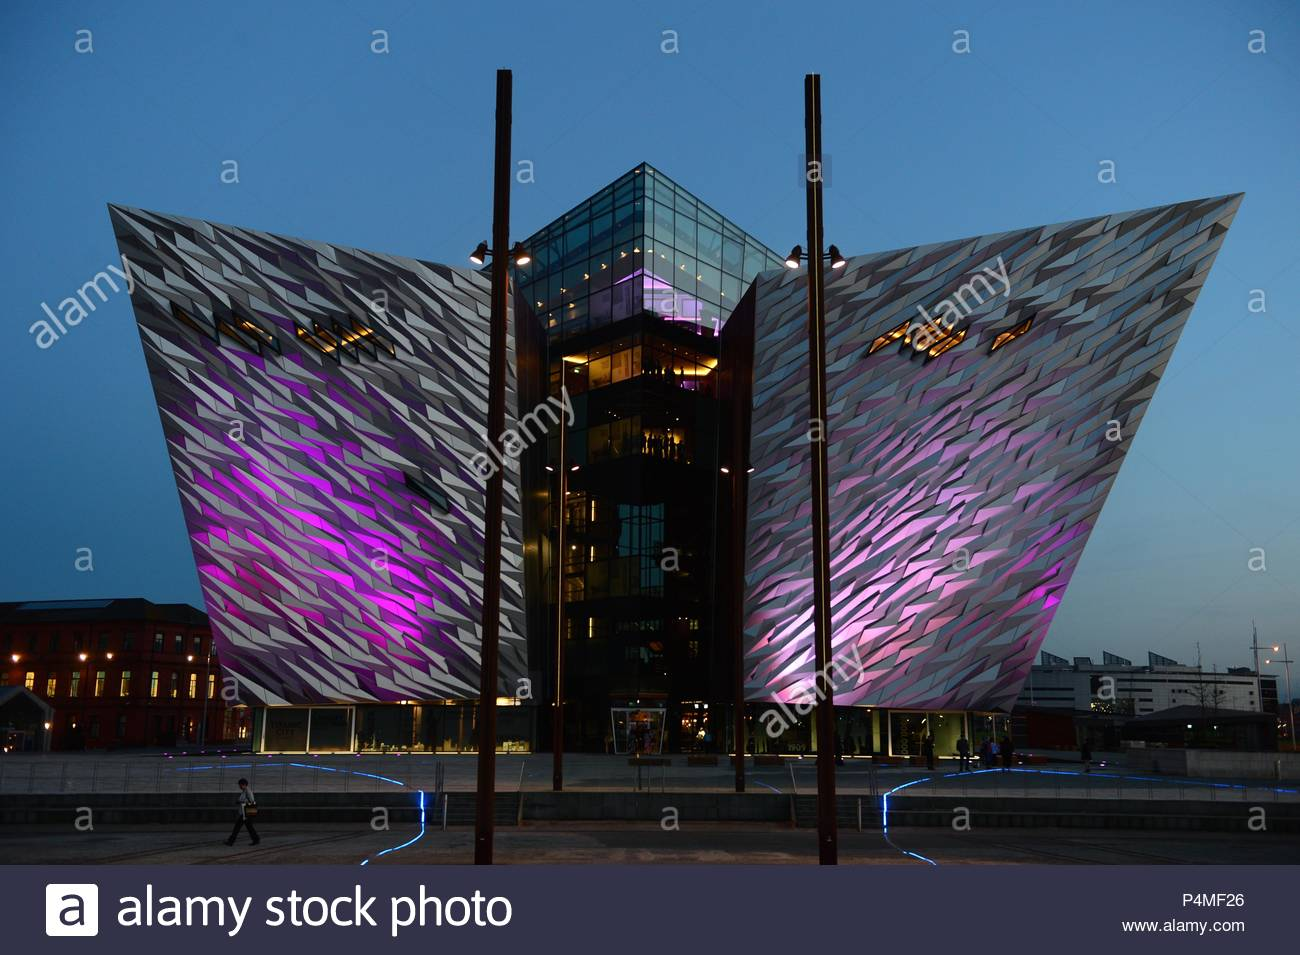 Titanic visitor centre in Belfast, Northern Ireland - Stock Image